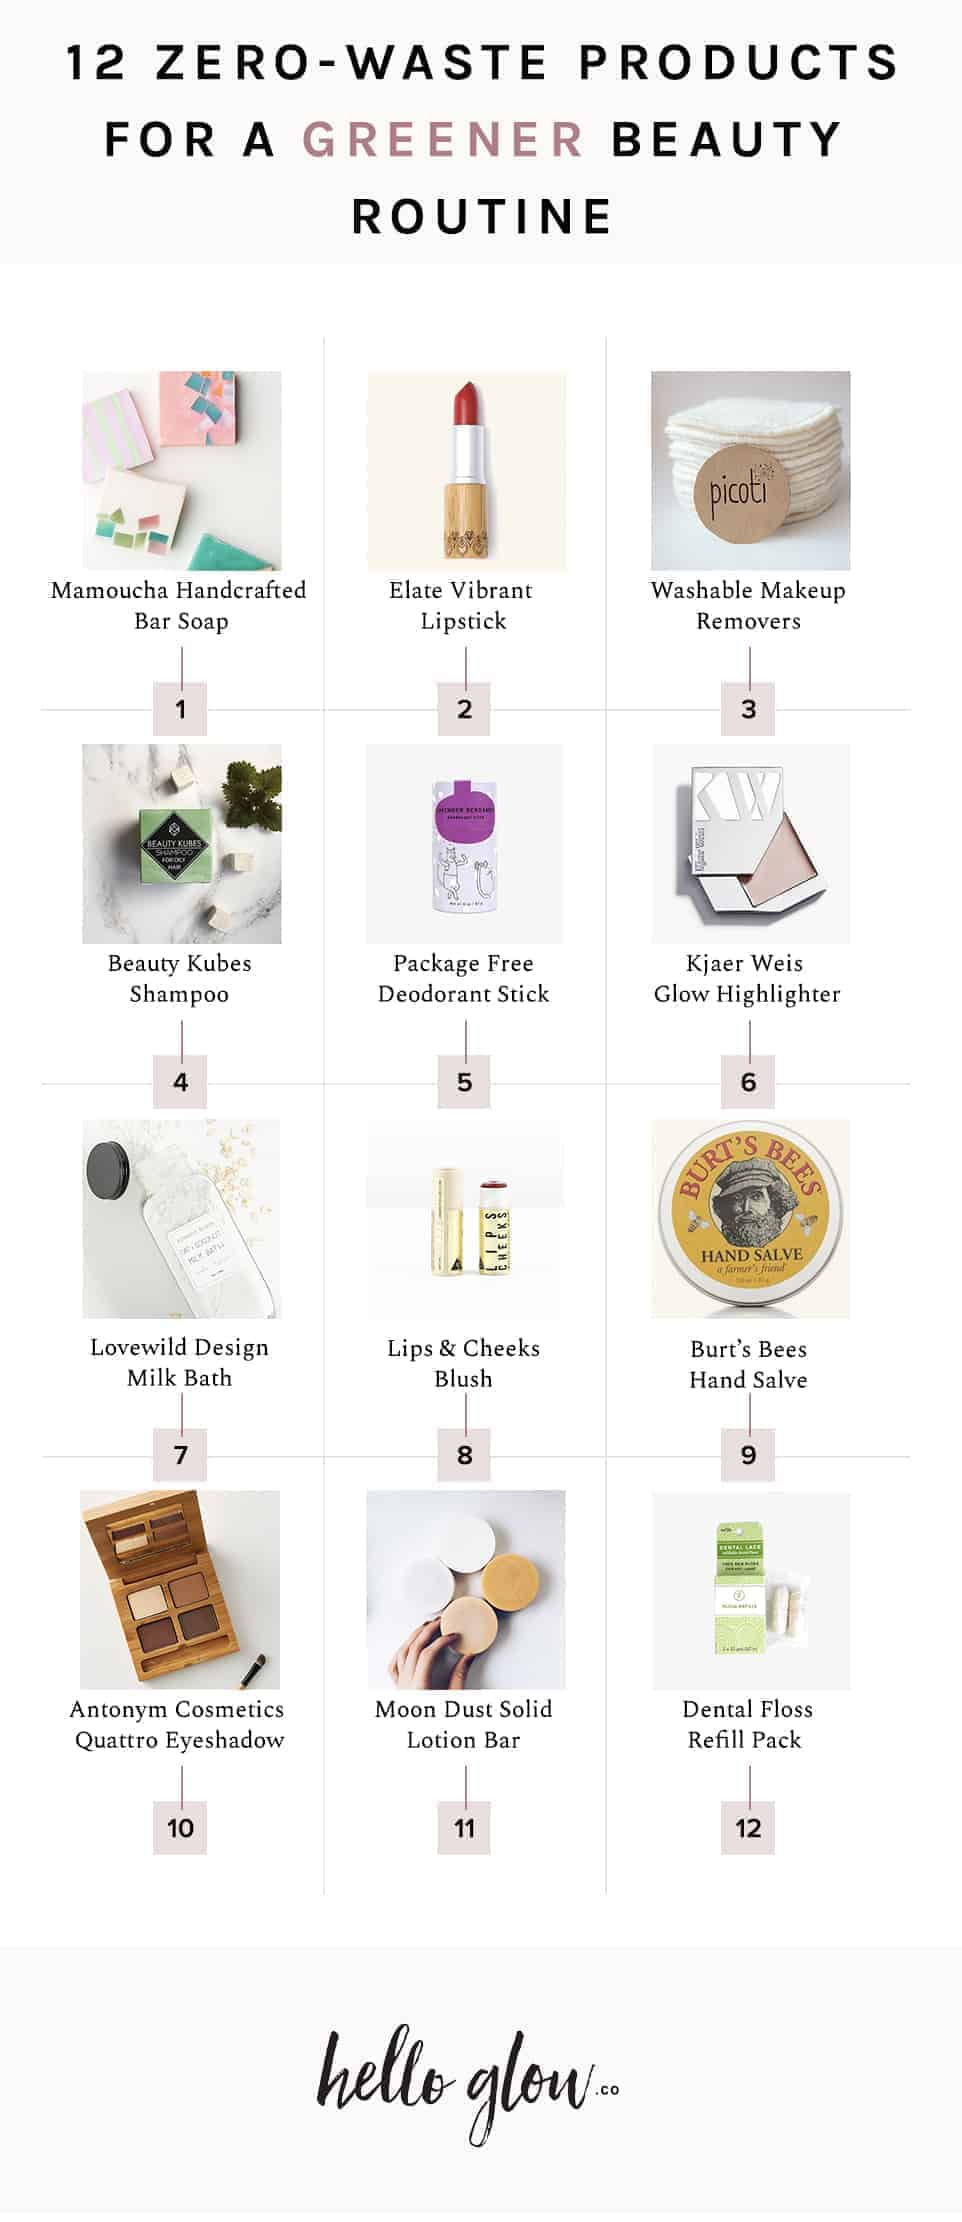 12 Zero Waste Products for a Greener Beauty Routine